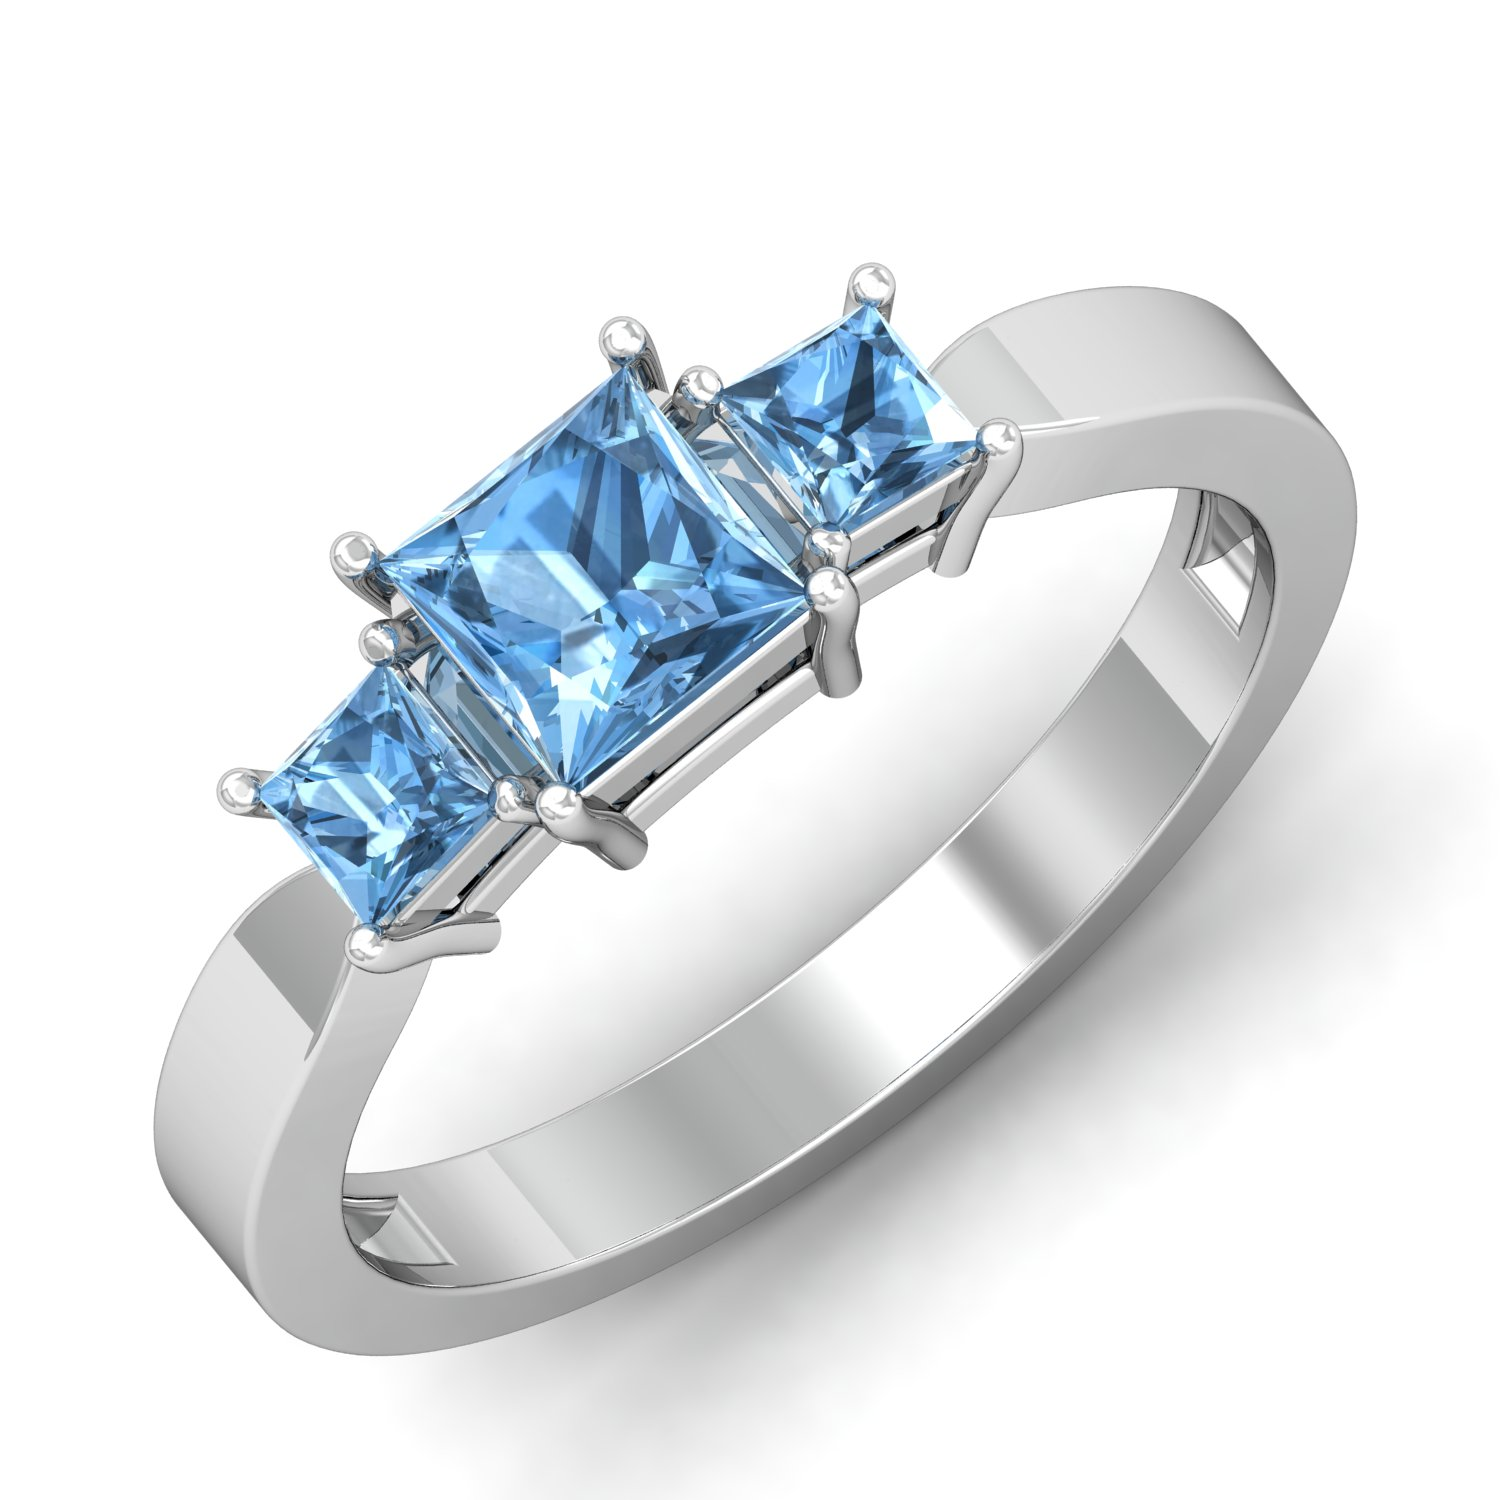 jewelry delicate aquarian rough ringgg aquamarine ring jewellery raw thoughts products